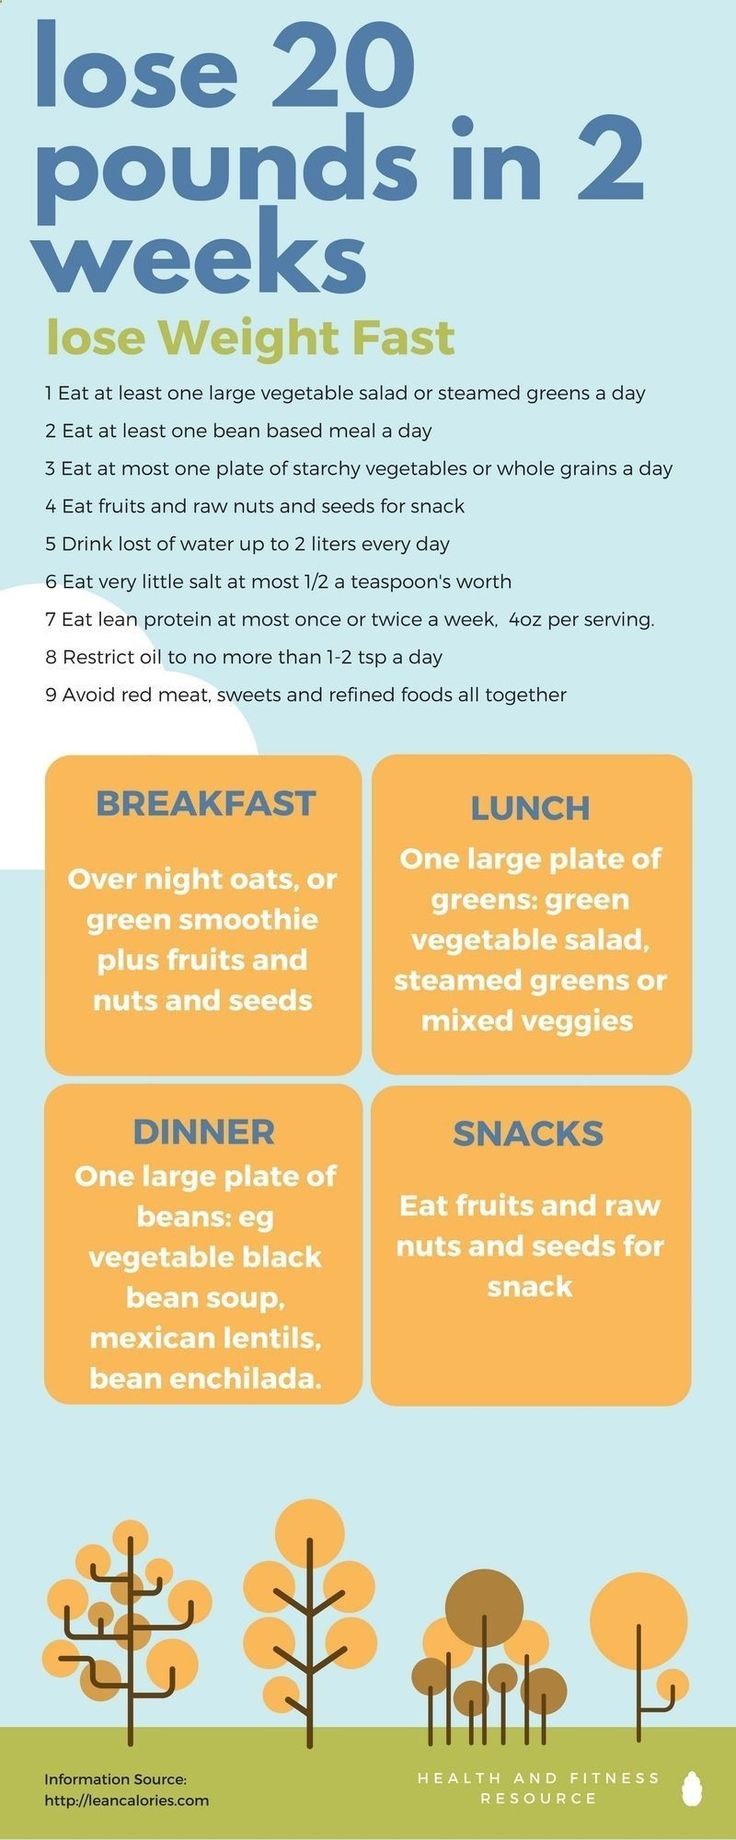 how to lose 10 pounds in 6 weeks diet plan